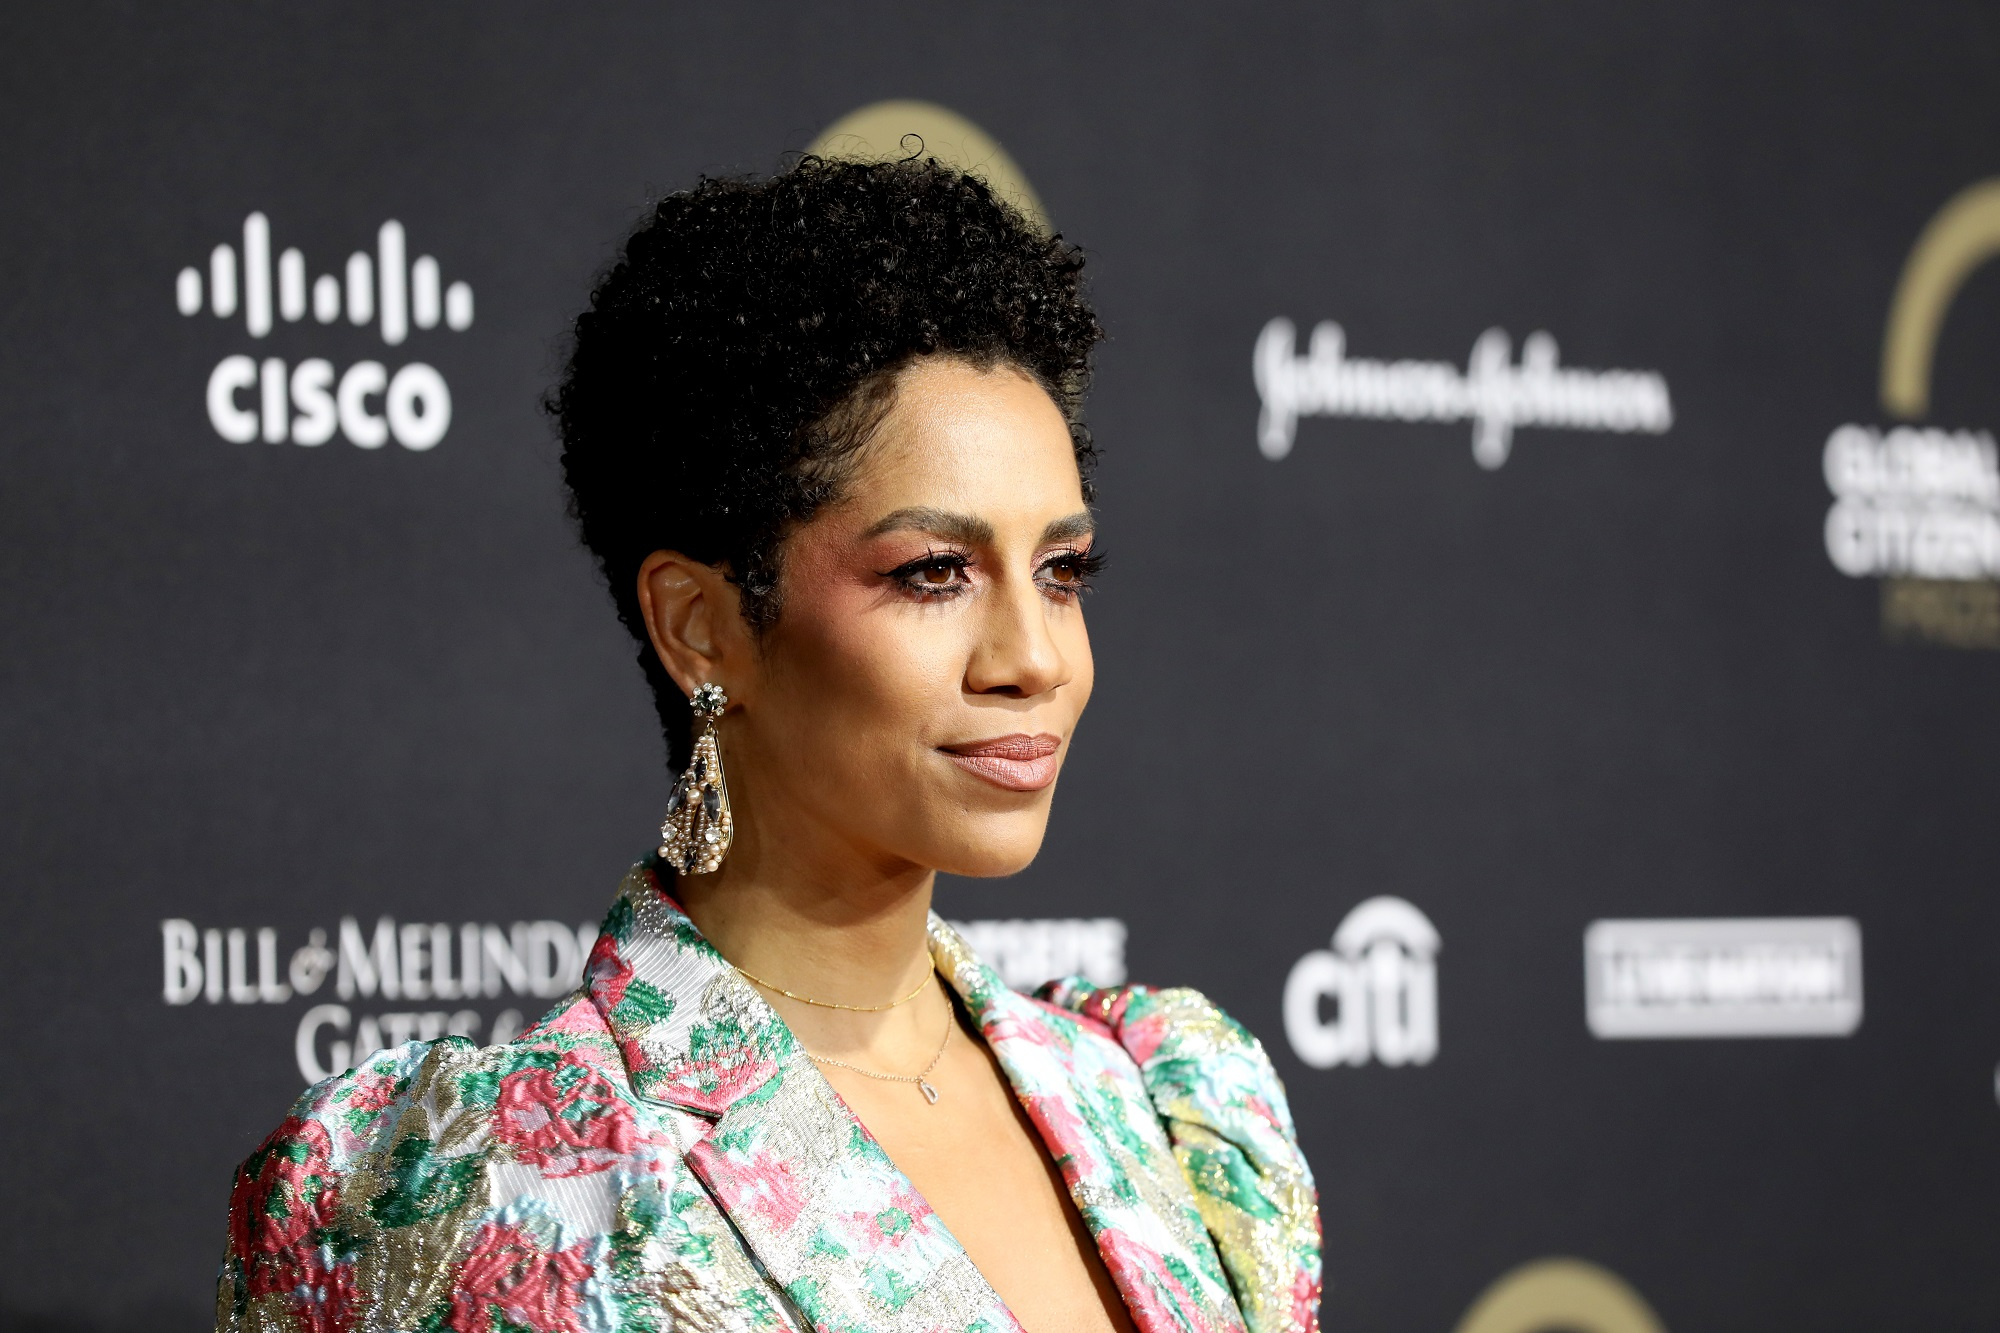 Dominique Tipper plays Jasai Chase-Owens' mother on The Expanse